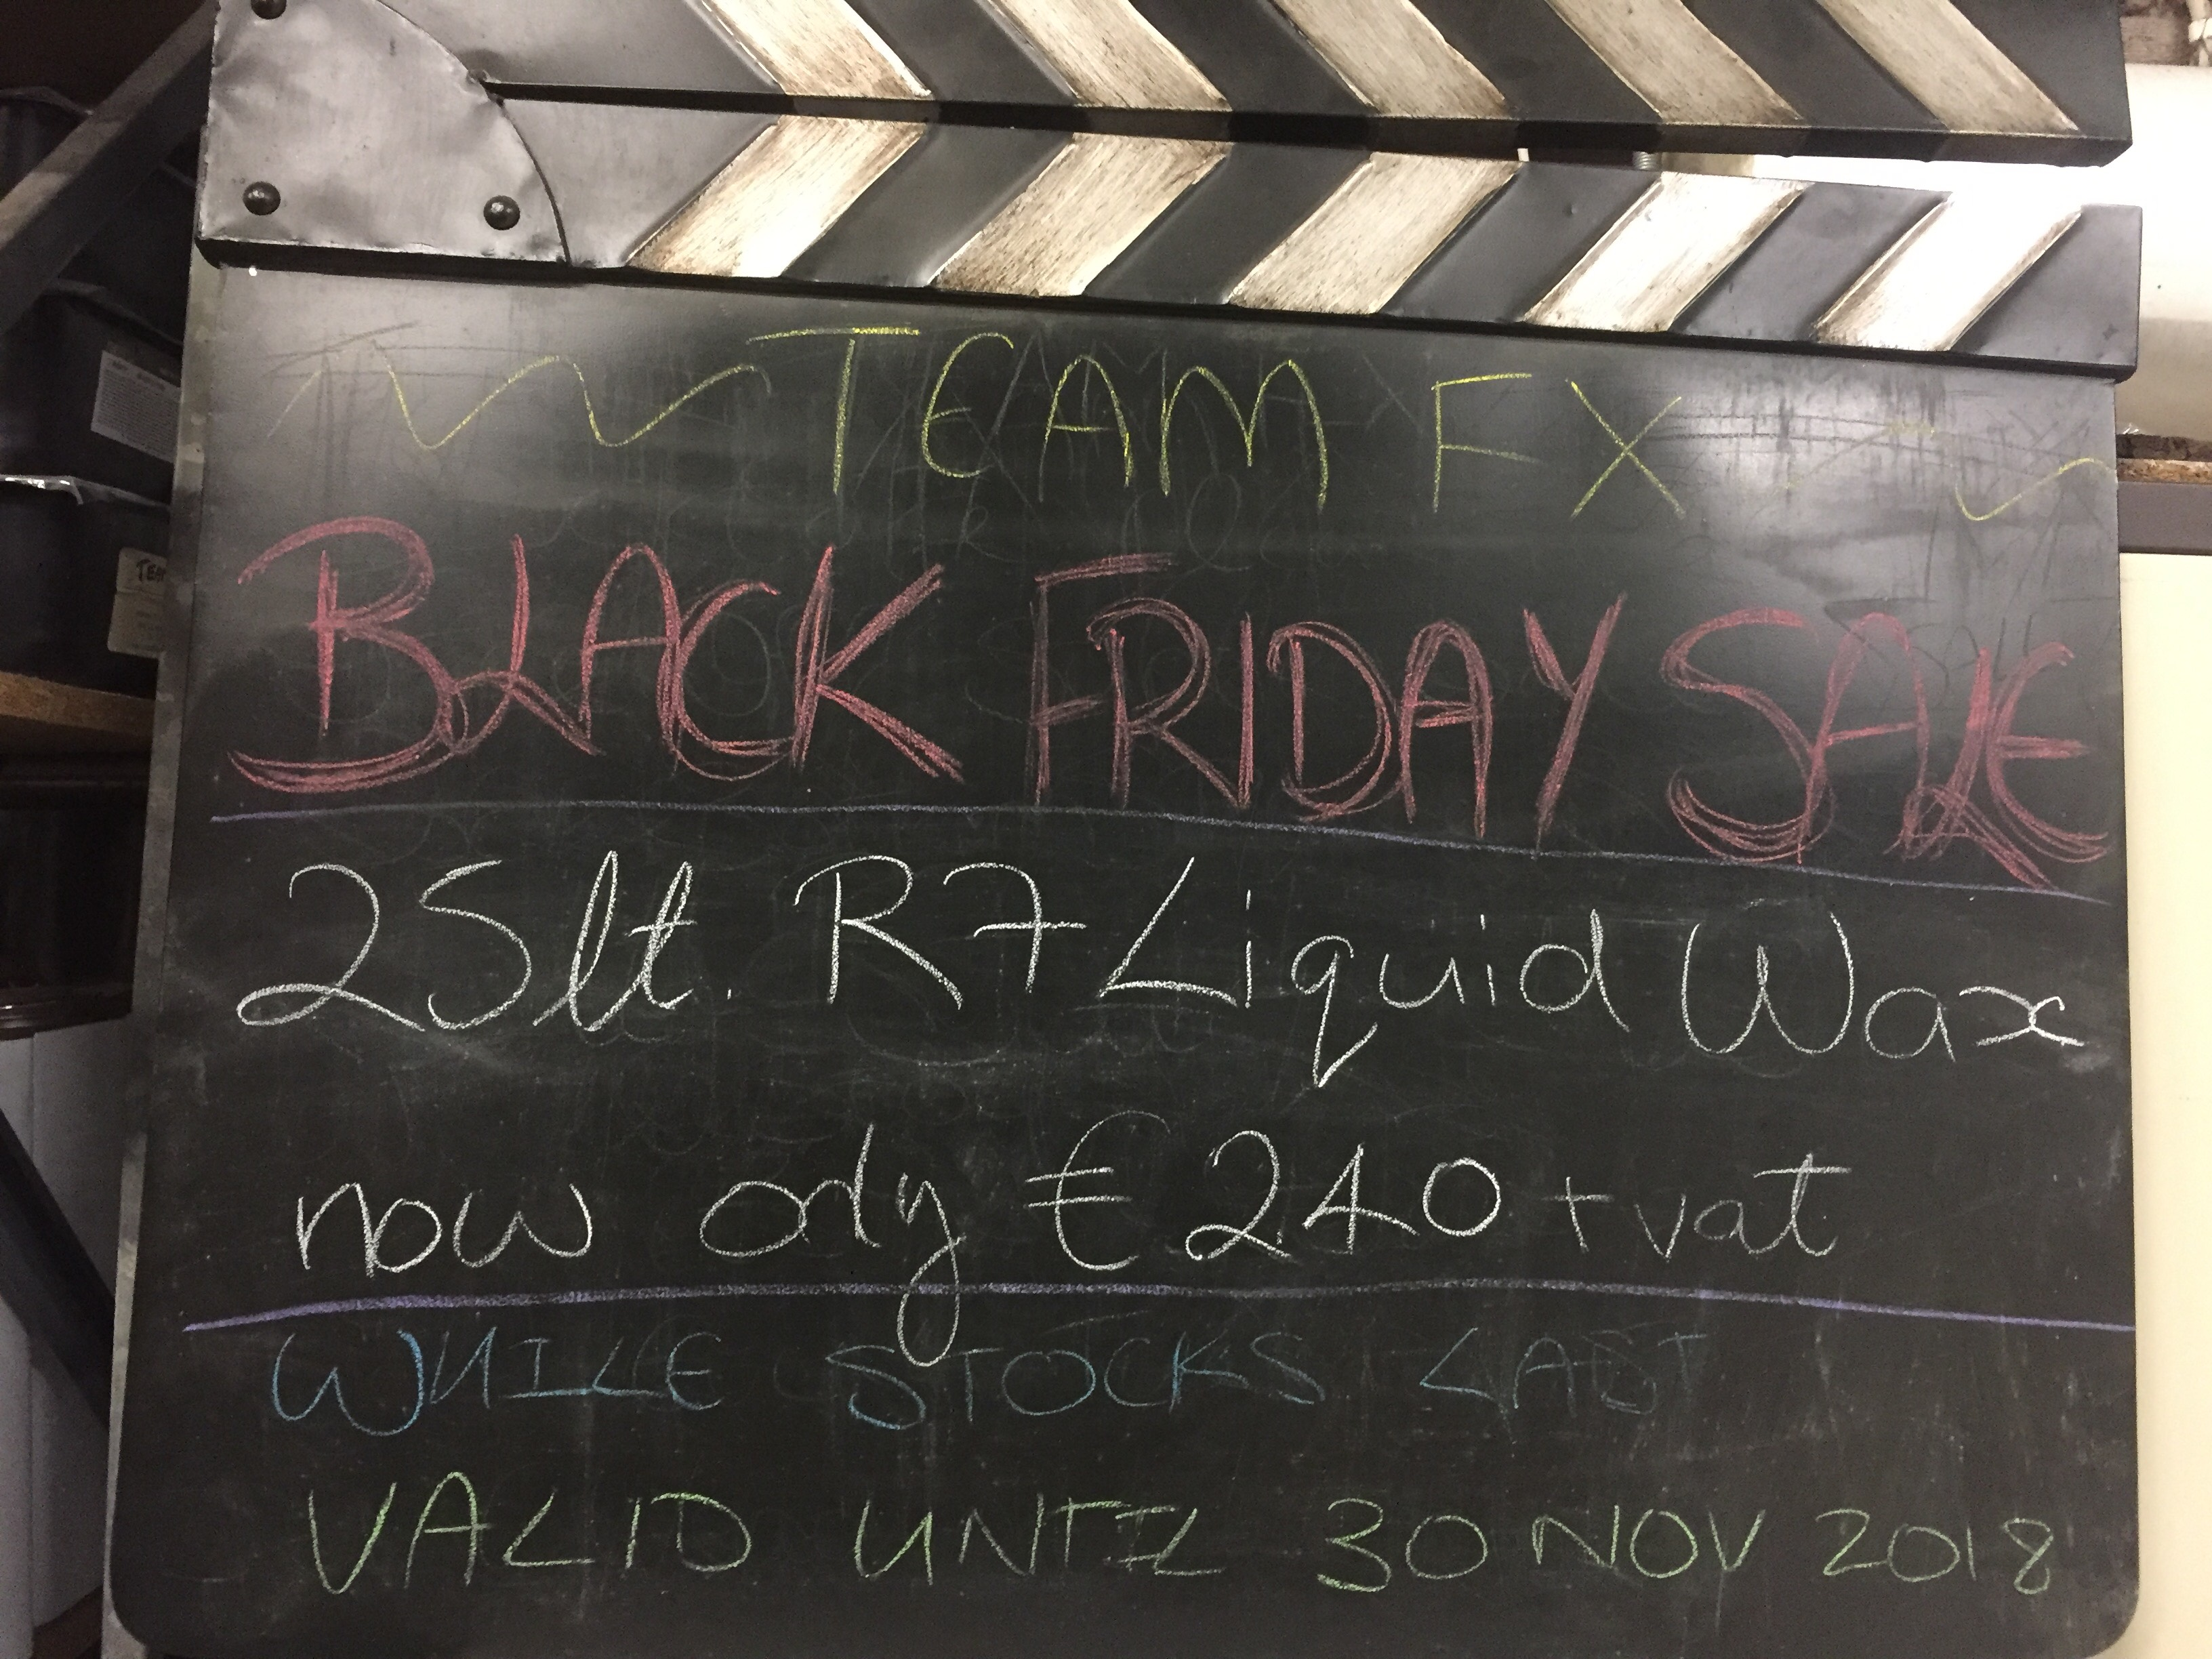 Team FX Black Friday Sale Silicones, Clay, Fast Cast and